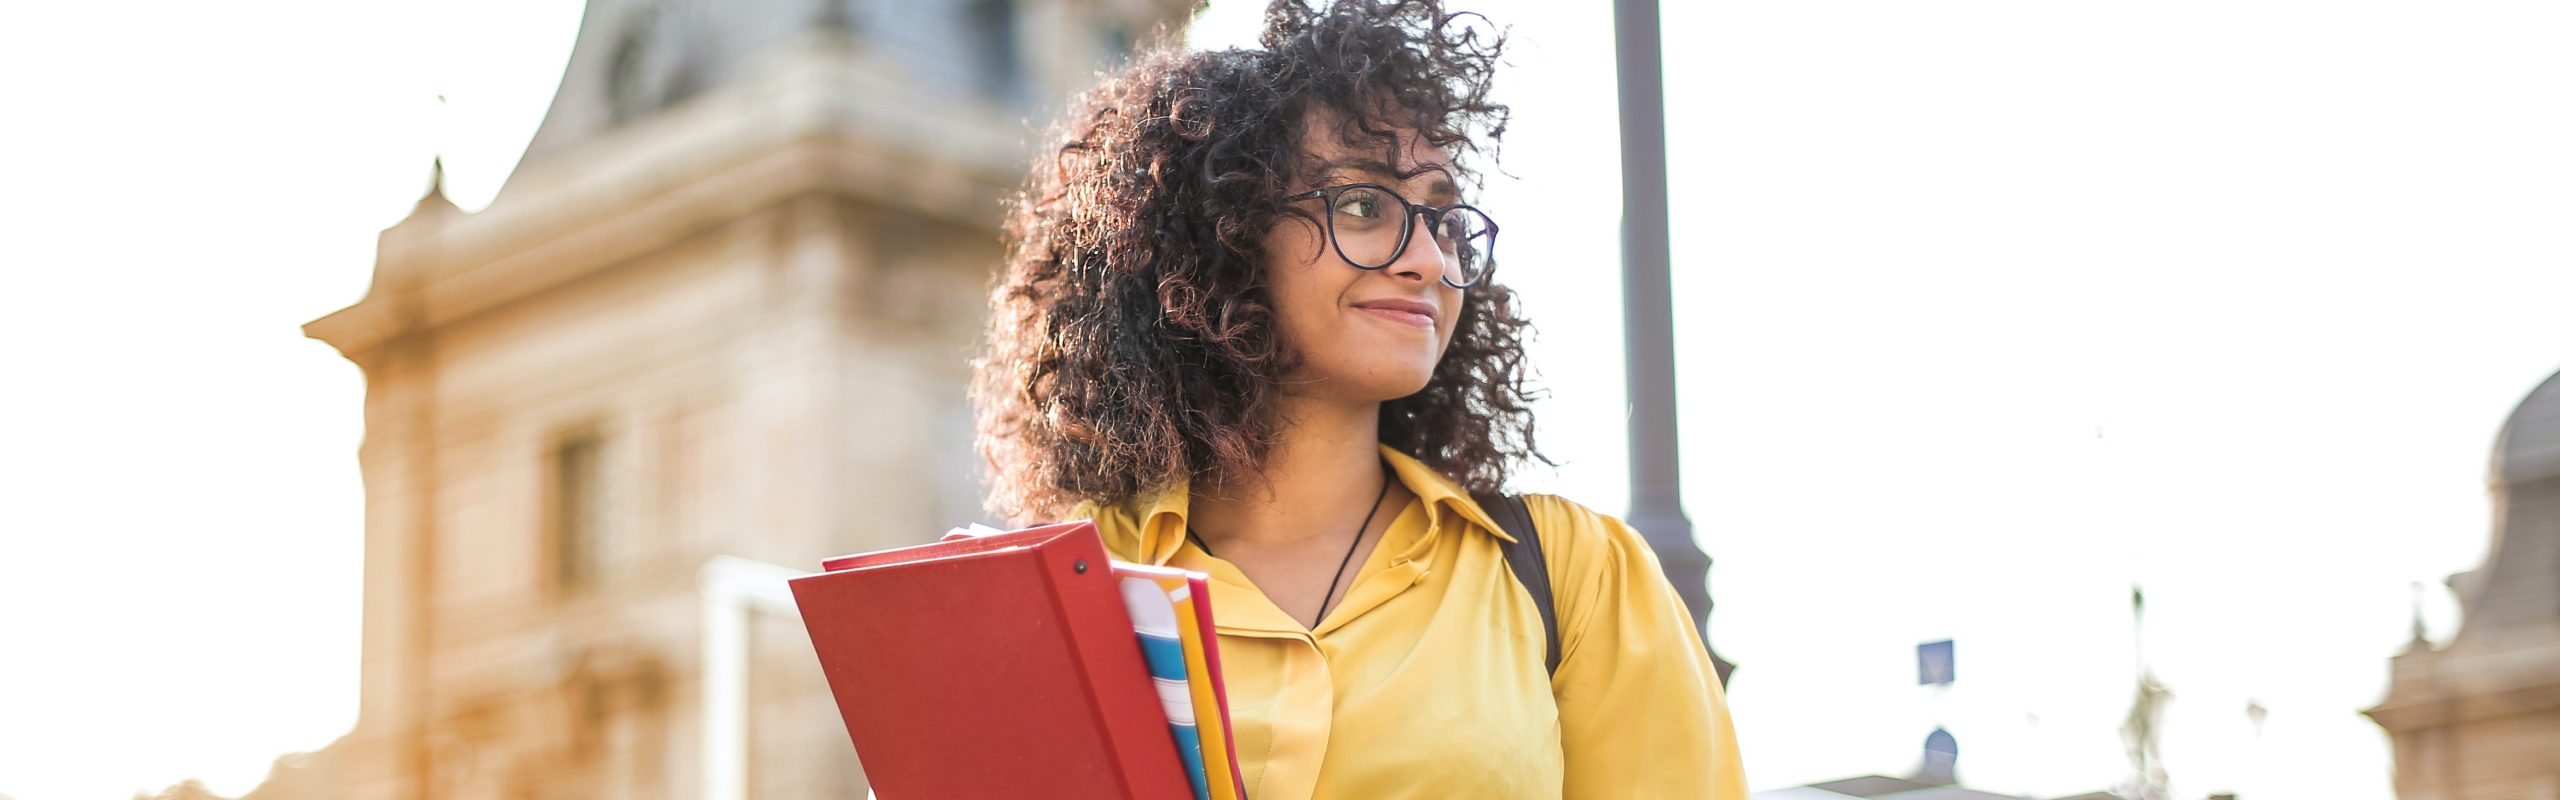 Header image of a Black girl with glasses holding several books